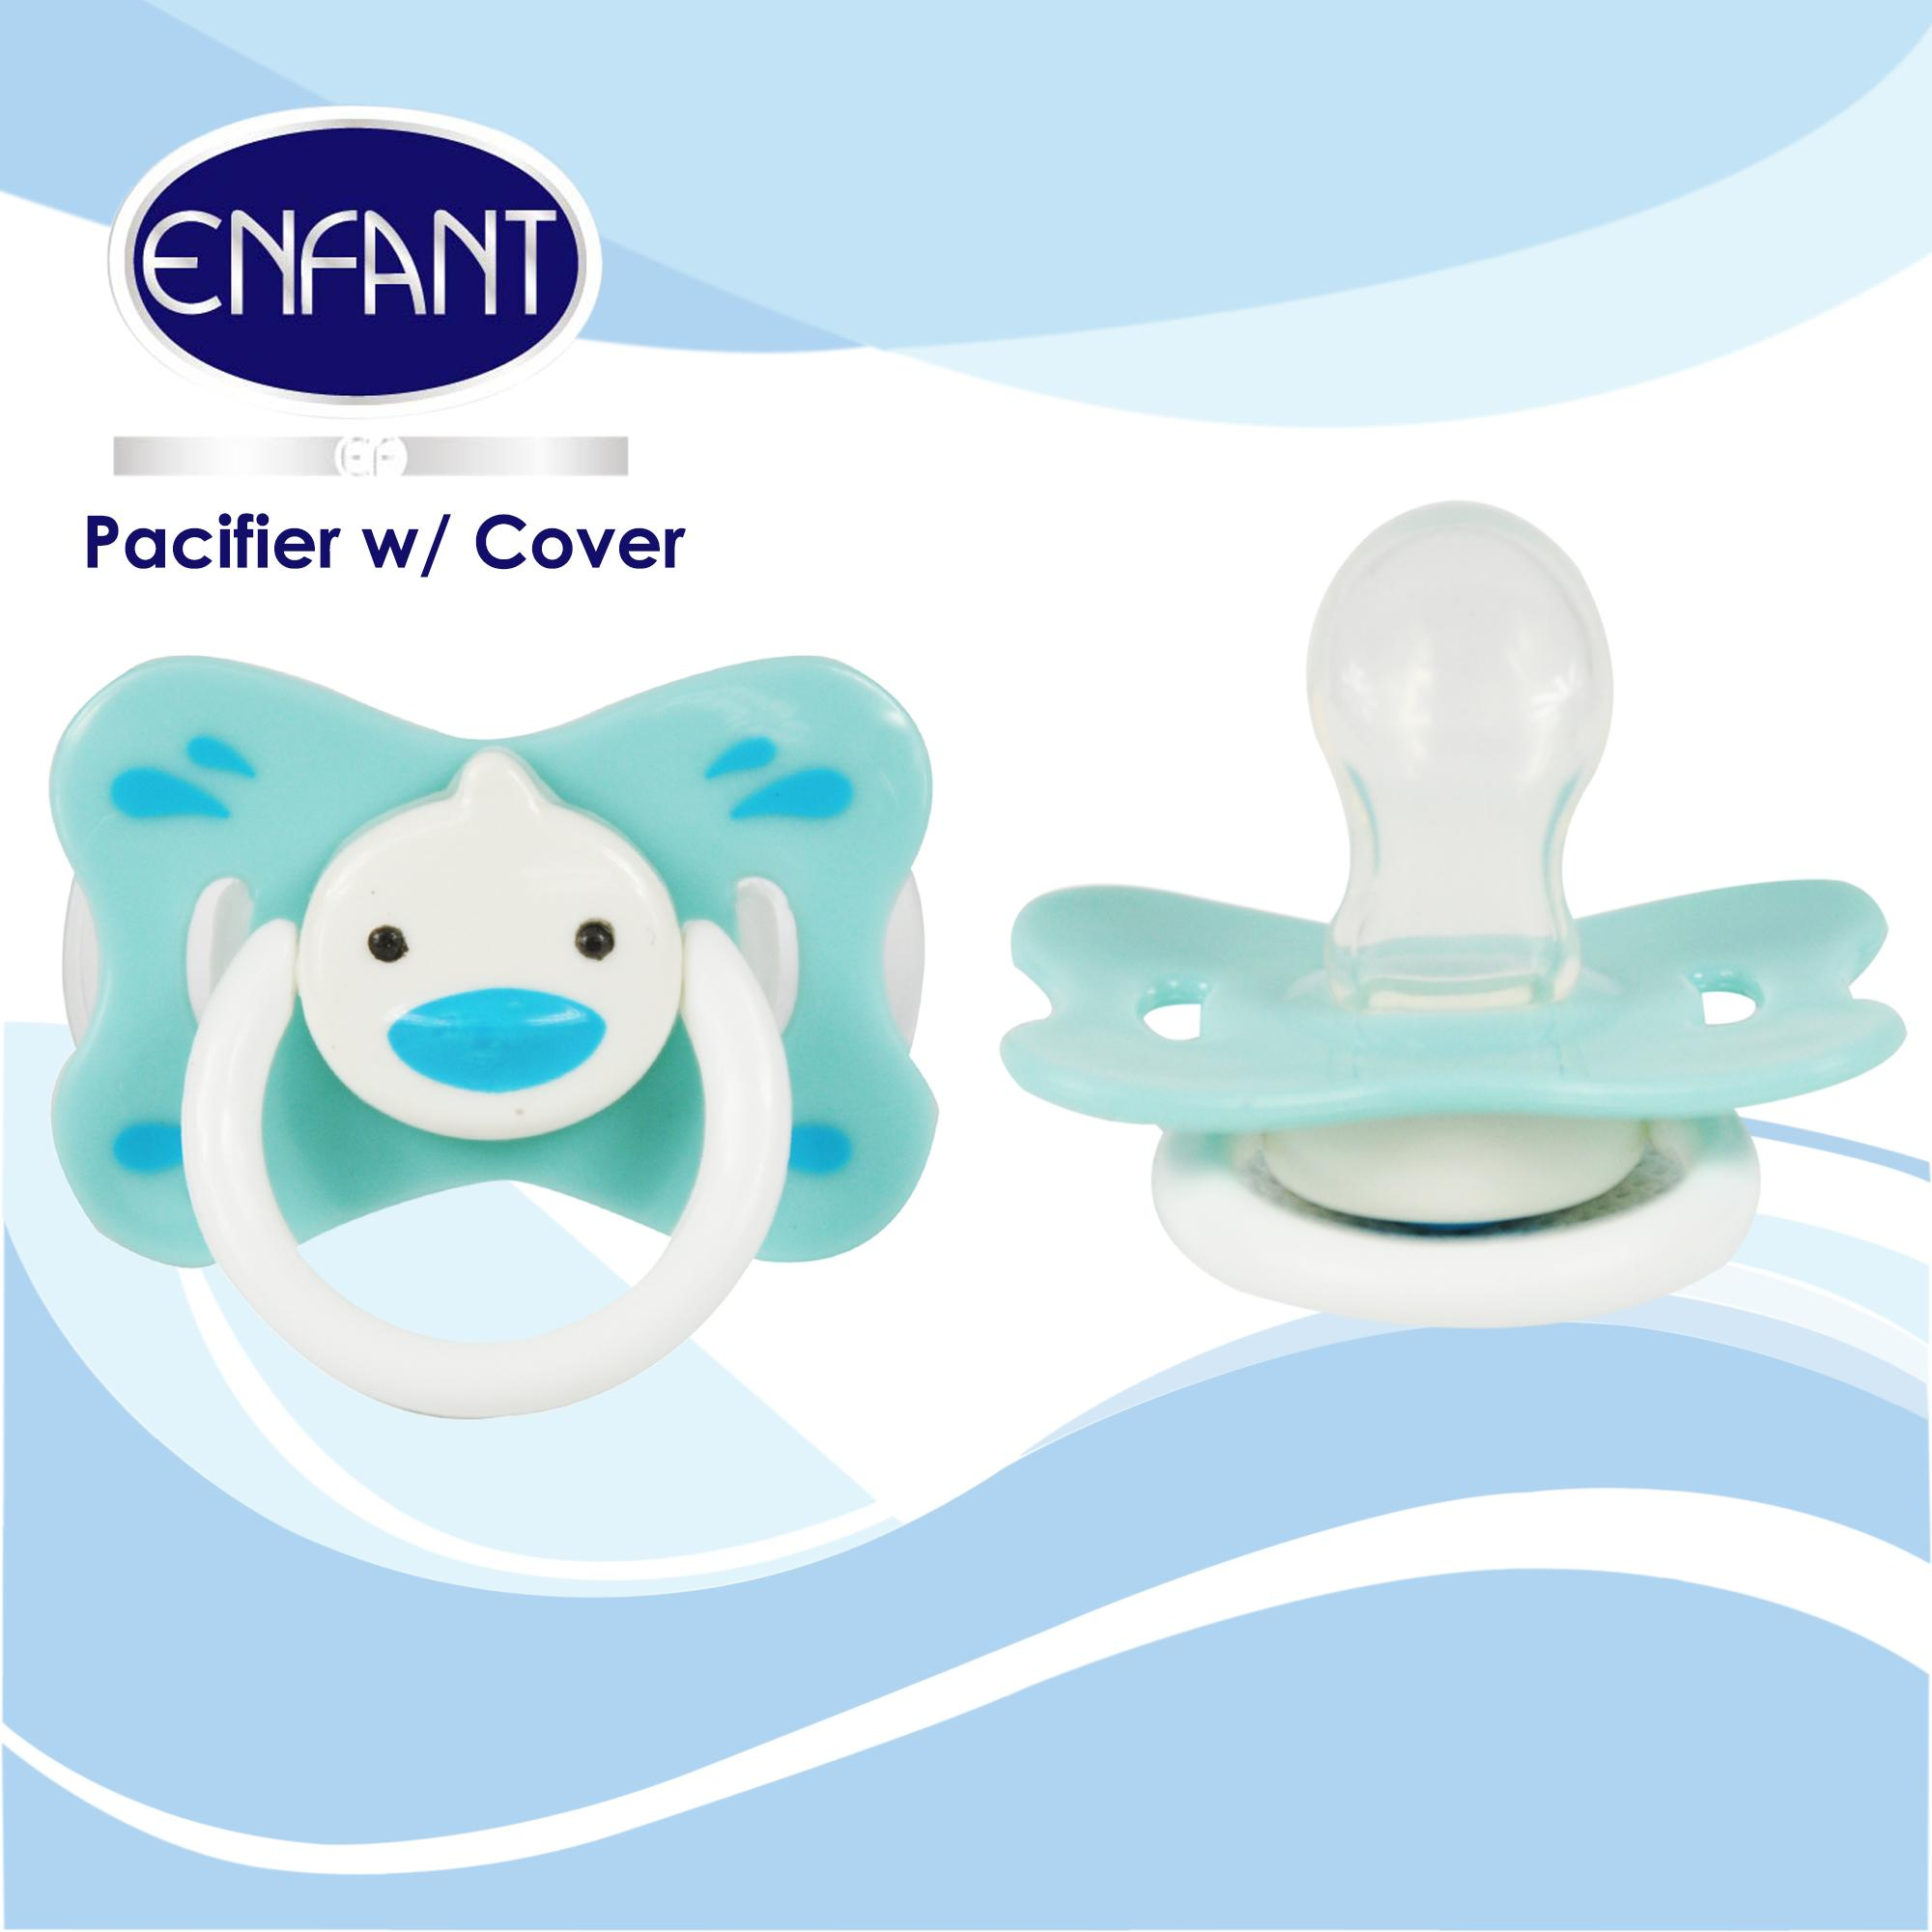 Enfant Pacifier With Cover By Enfant Specialty Shop.